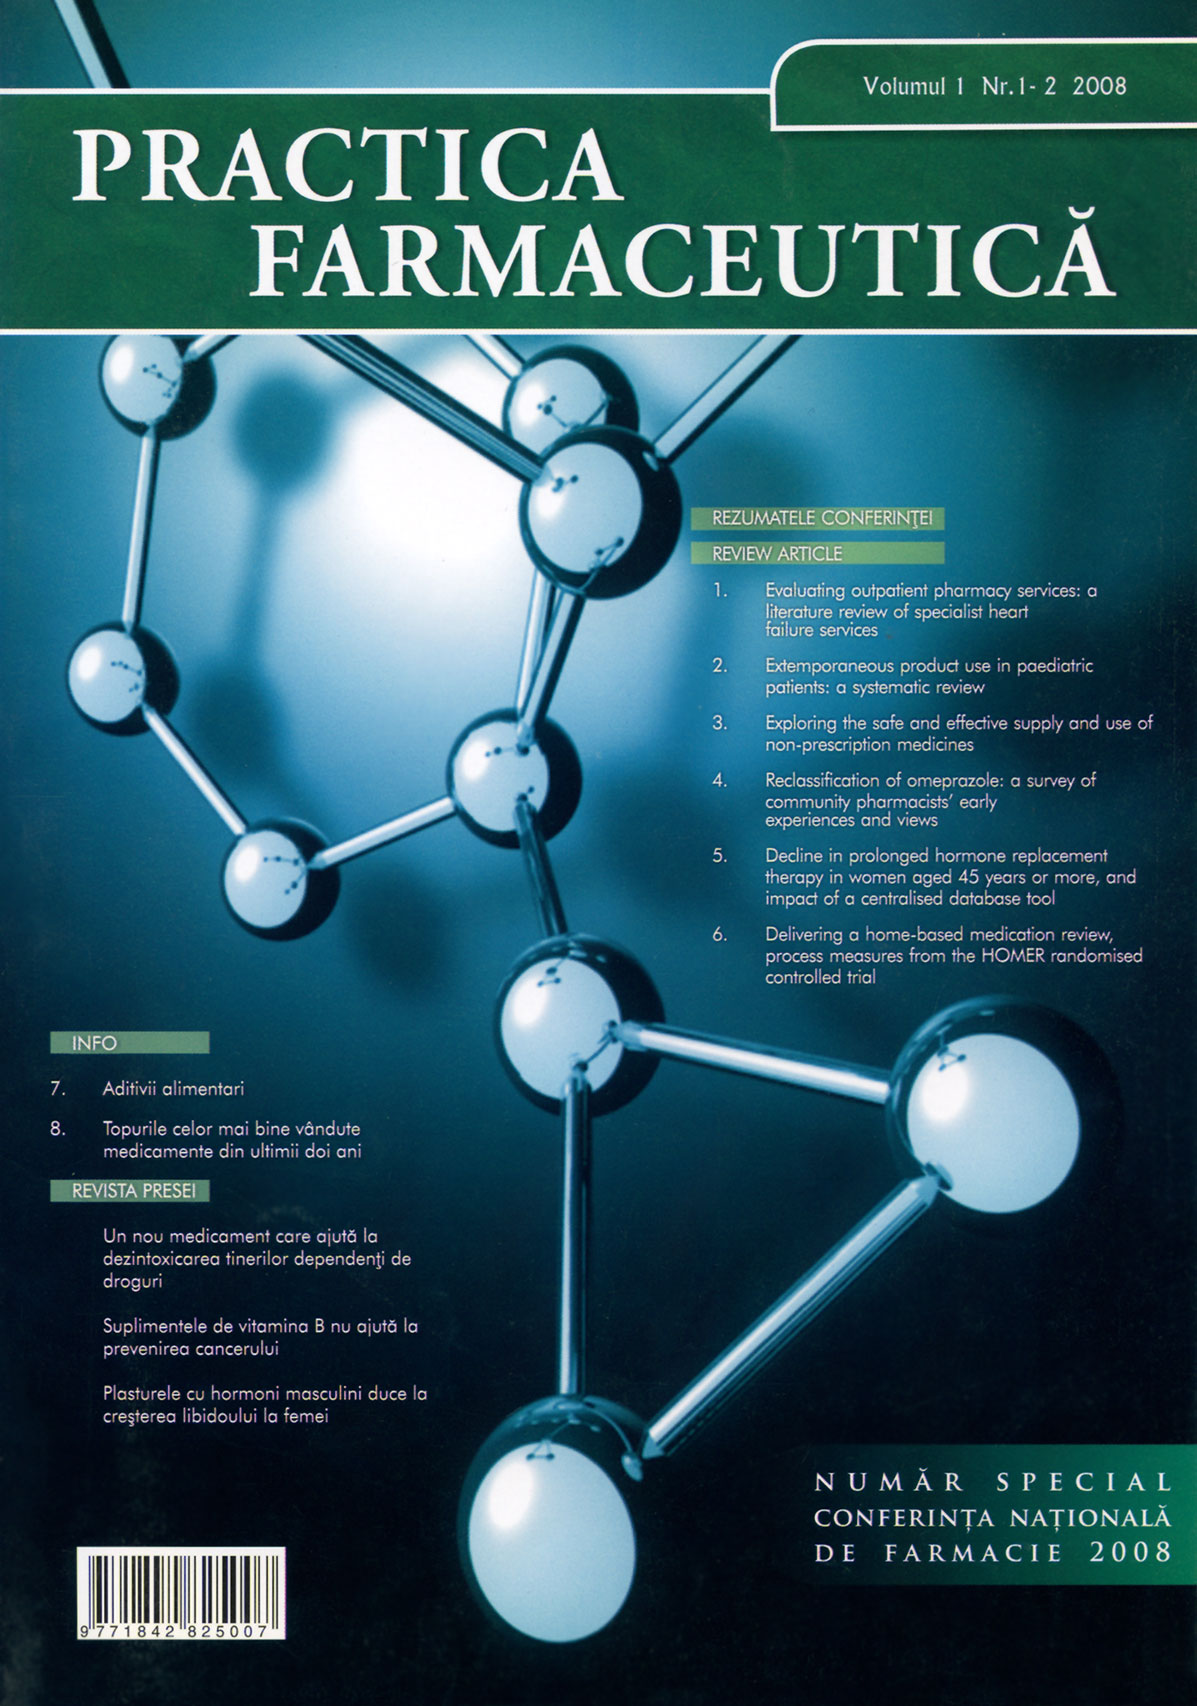 Revista Practica Farmaceutica, Vol. 1, Nr. 1-2, 2008